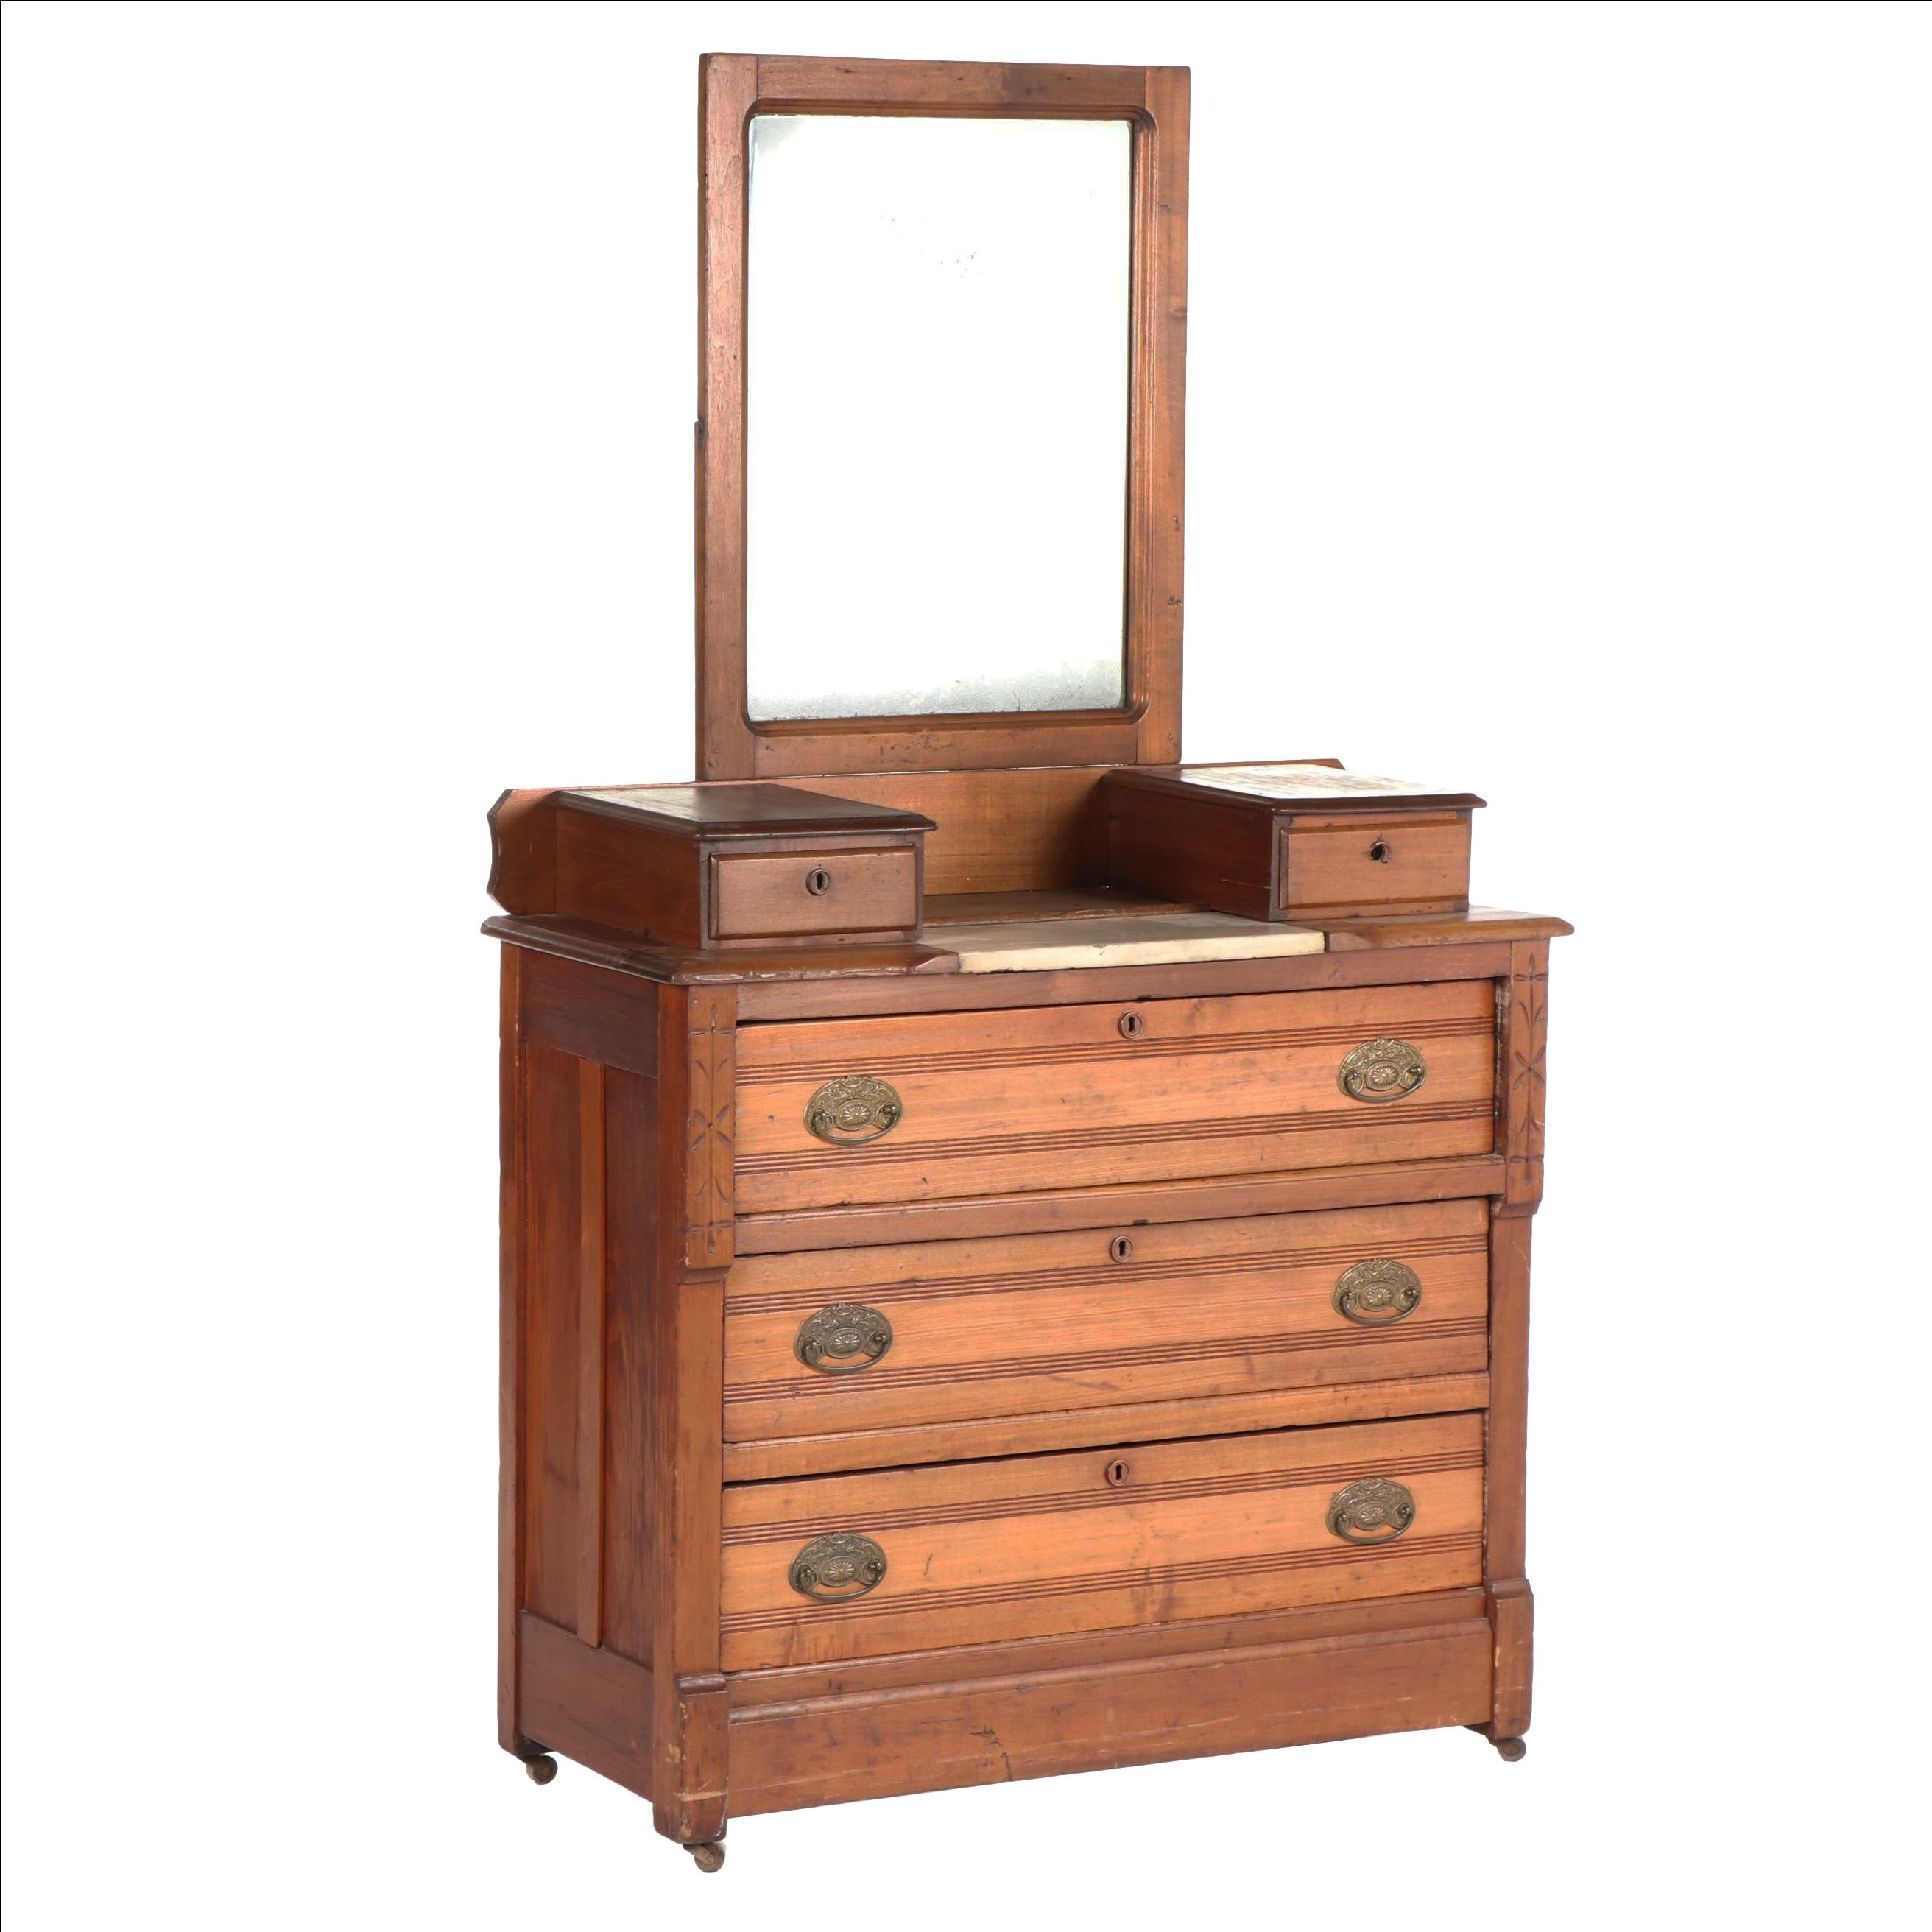 Eastlake Walnut Five-Drawer Dresser with Mirror on Casters, Late 19th Century